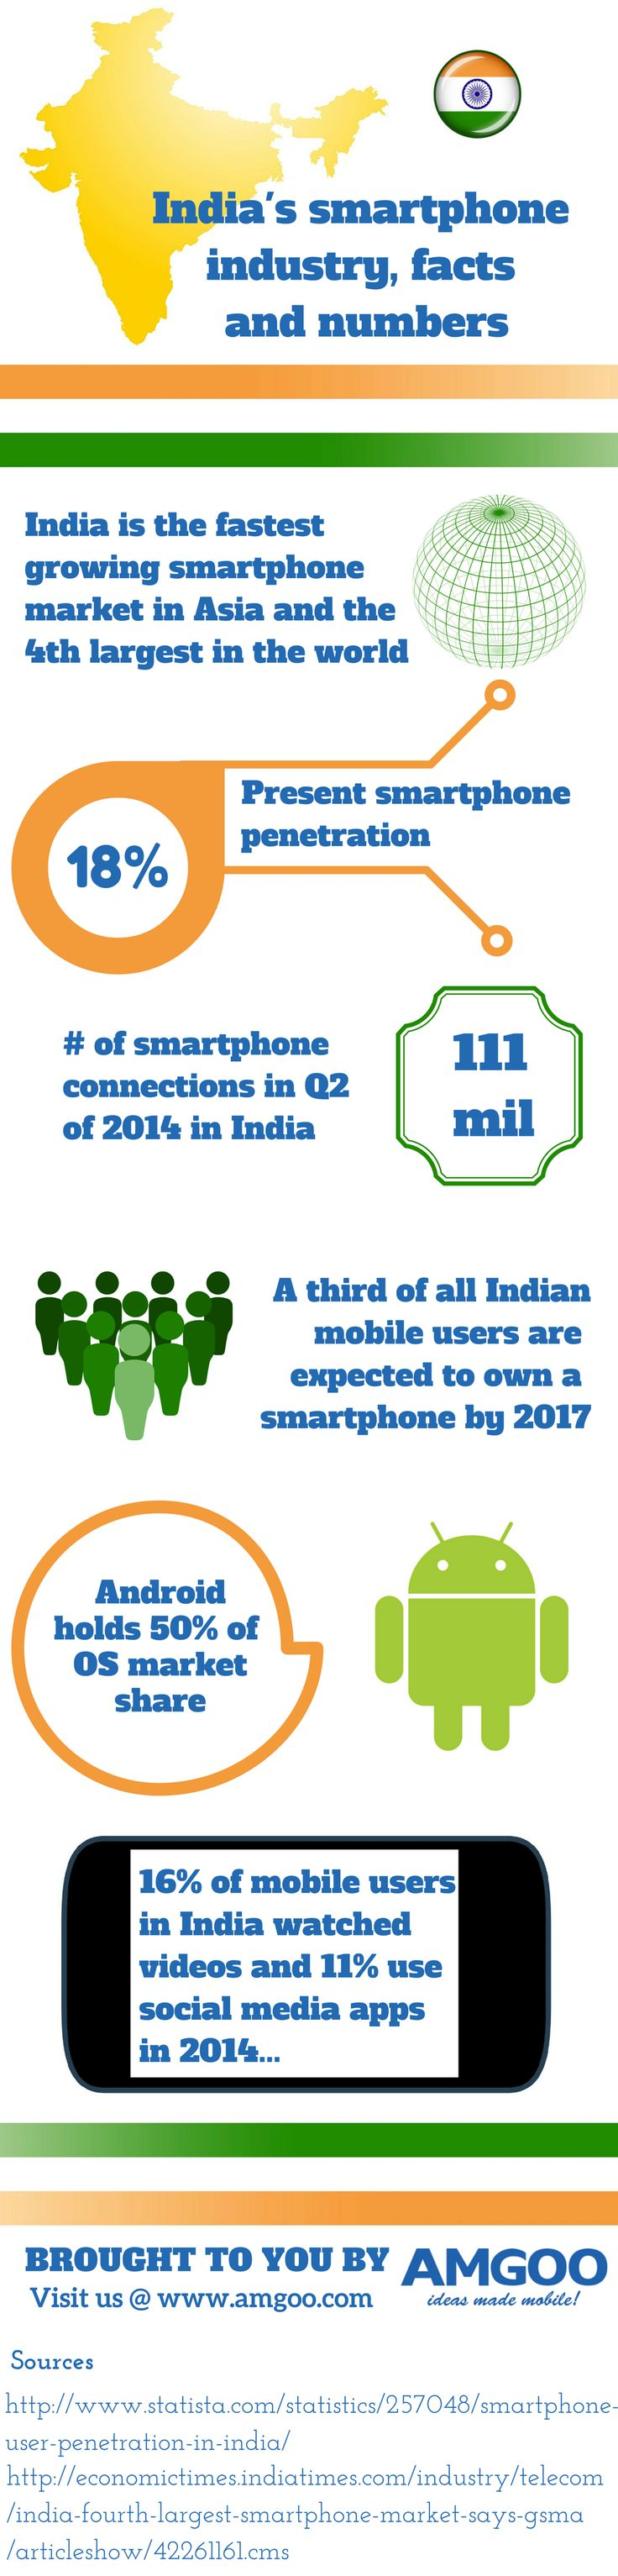 India is the fastest growing smarphone market in Asia and the fourth largest in the world! See how its smartphone industry is shaping up in this infographic http://www.amgoo.com/ #AMGOO #IndiaSmartphoneIndustry